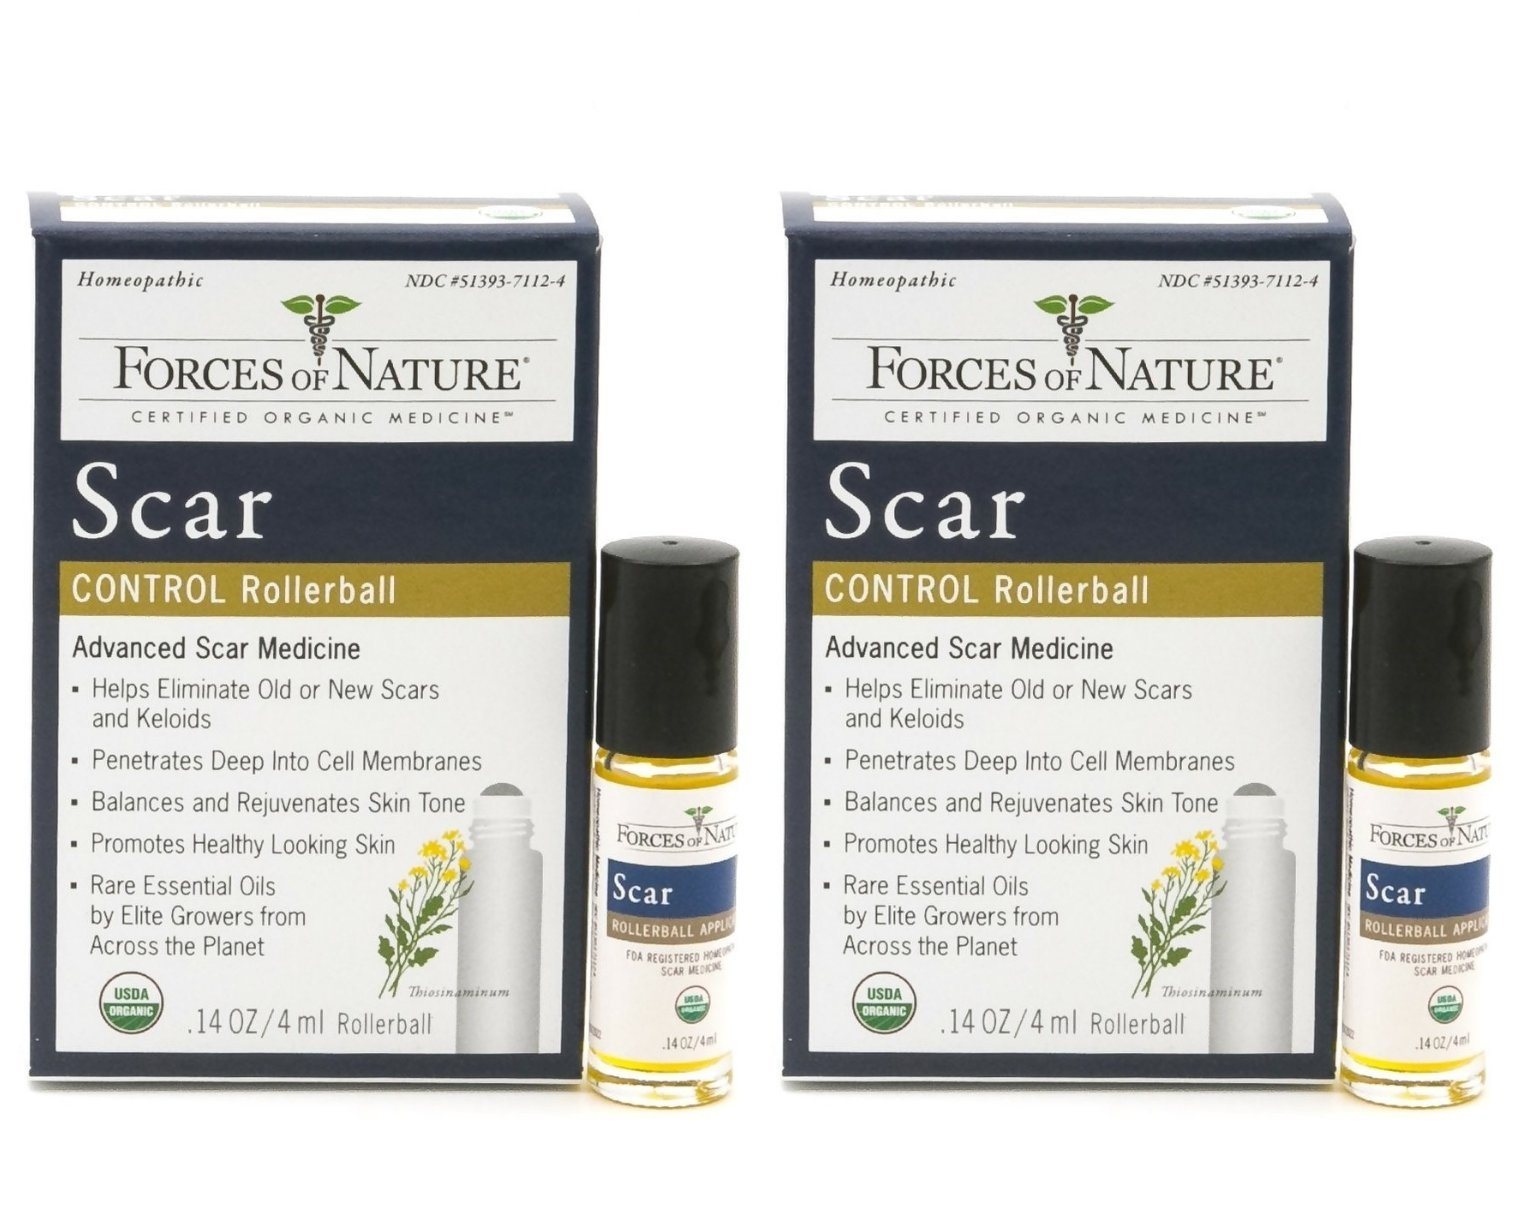 Forces of Nature Scar Control (Pack of 2) With Mustard Seed, Rosehip Oil, Rosemary Oil, Everlasting Oil, Lavender Oil and Sesame Oil, 11 ml. Each by Forces of Nature Naturals